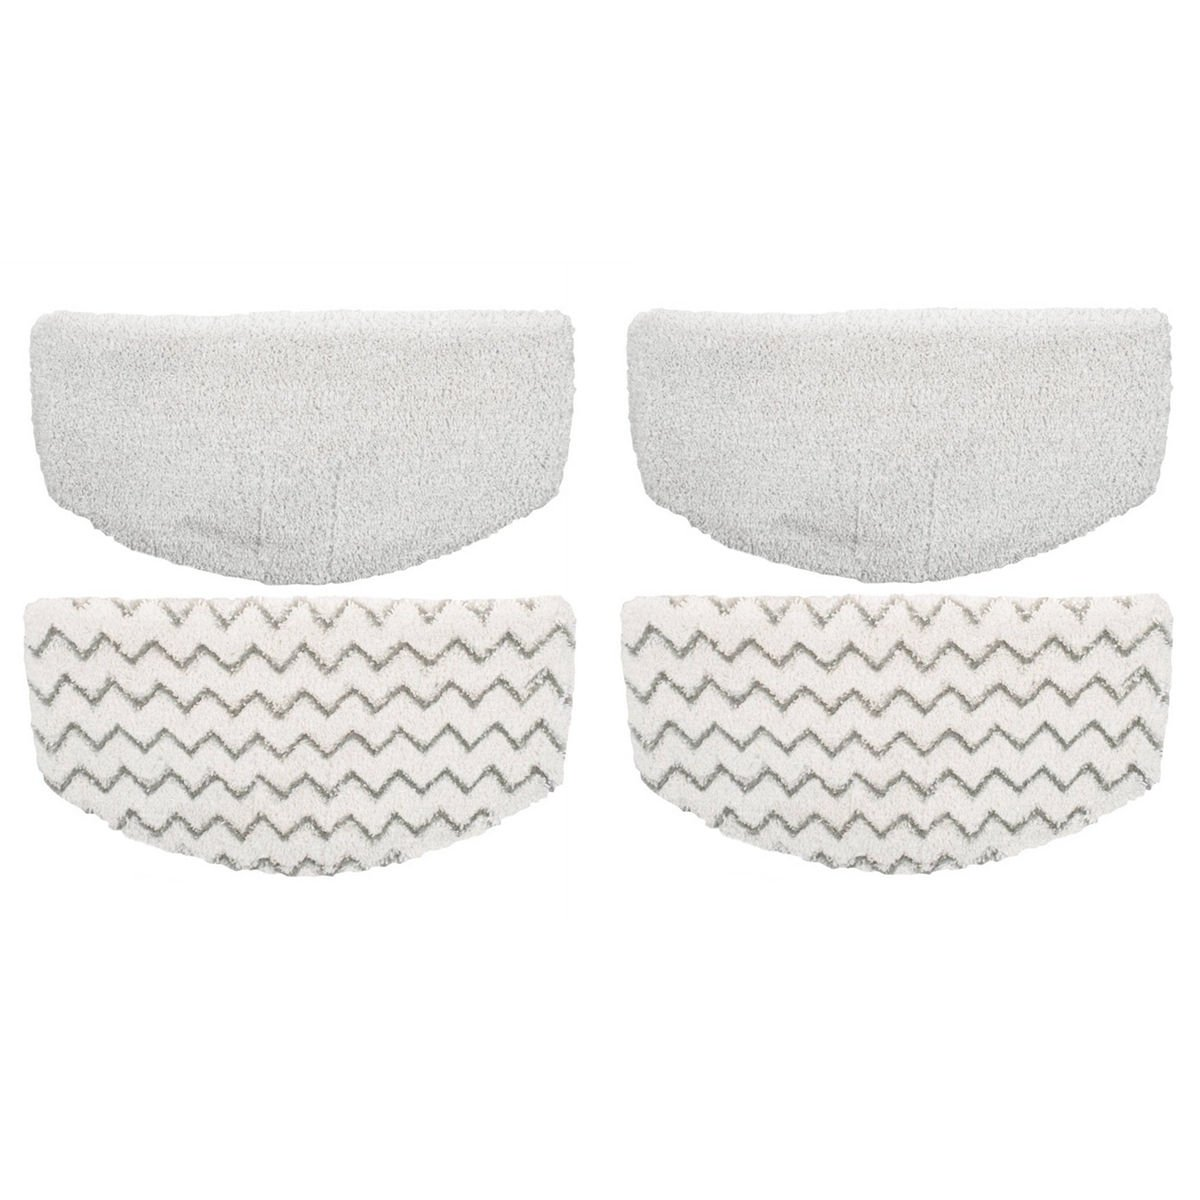 Microfiber Washable Steam Mop Pads Replacement for Bissell Powerfresh 1940 Series Steam Mop (4 Packs)